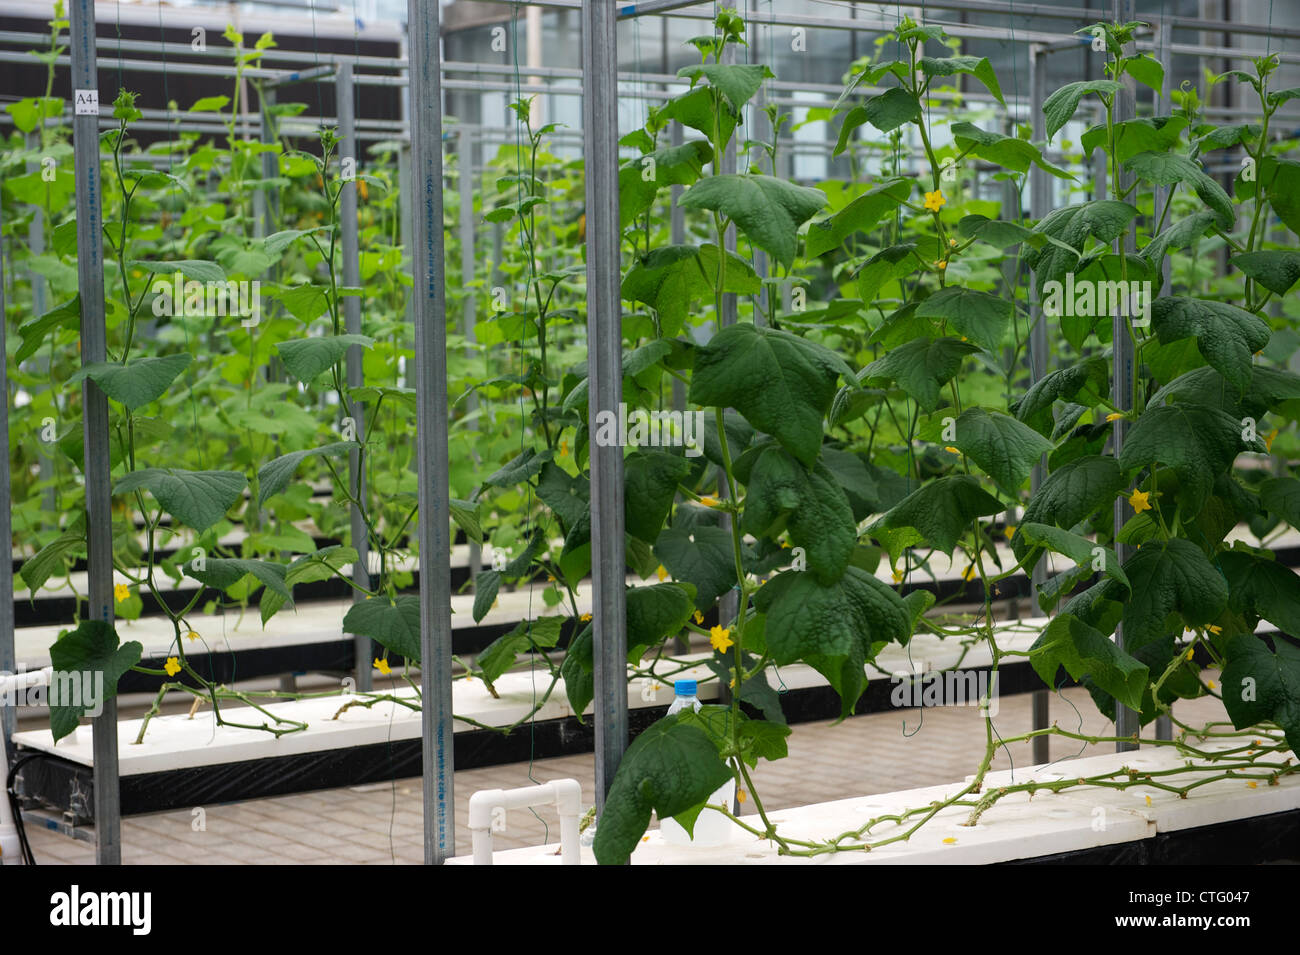 Cucumber grown with nutrient fluid in China. - Stock Image